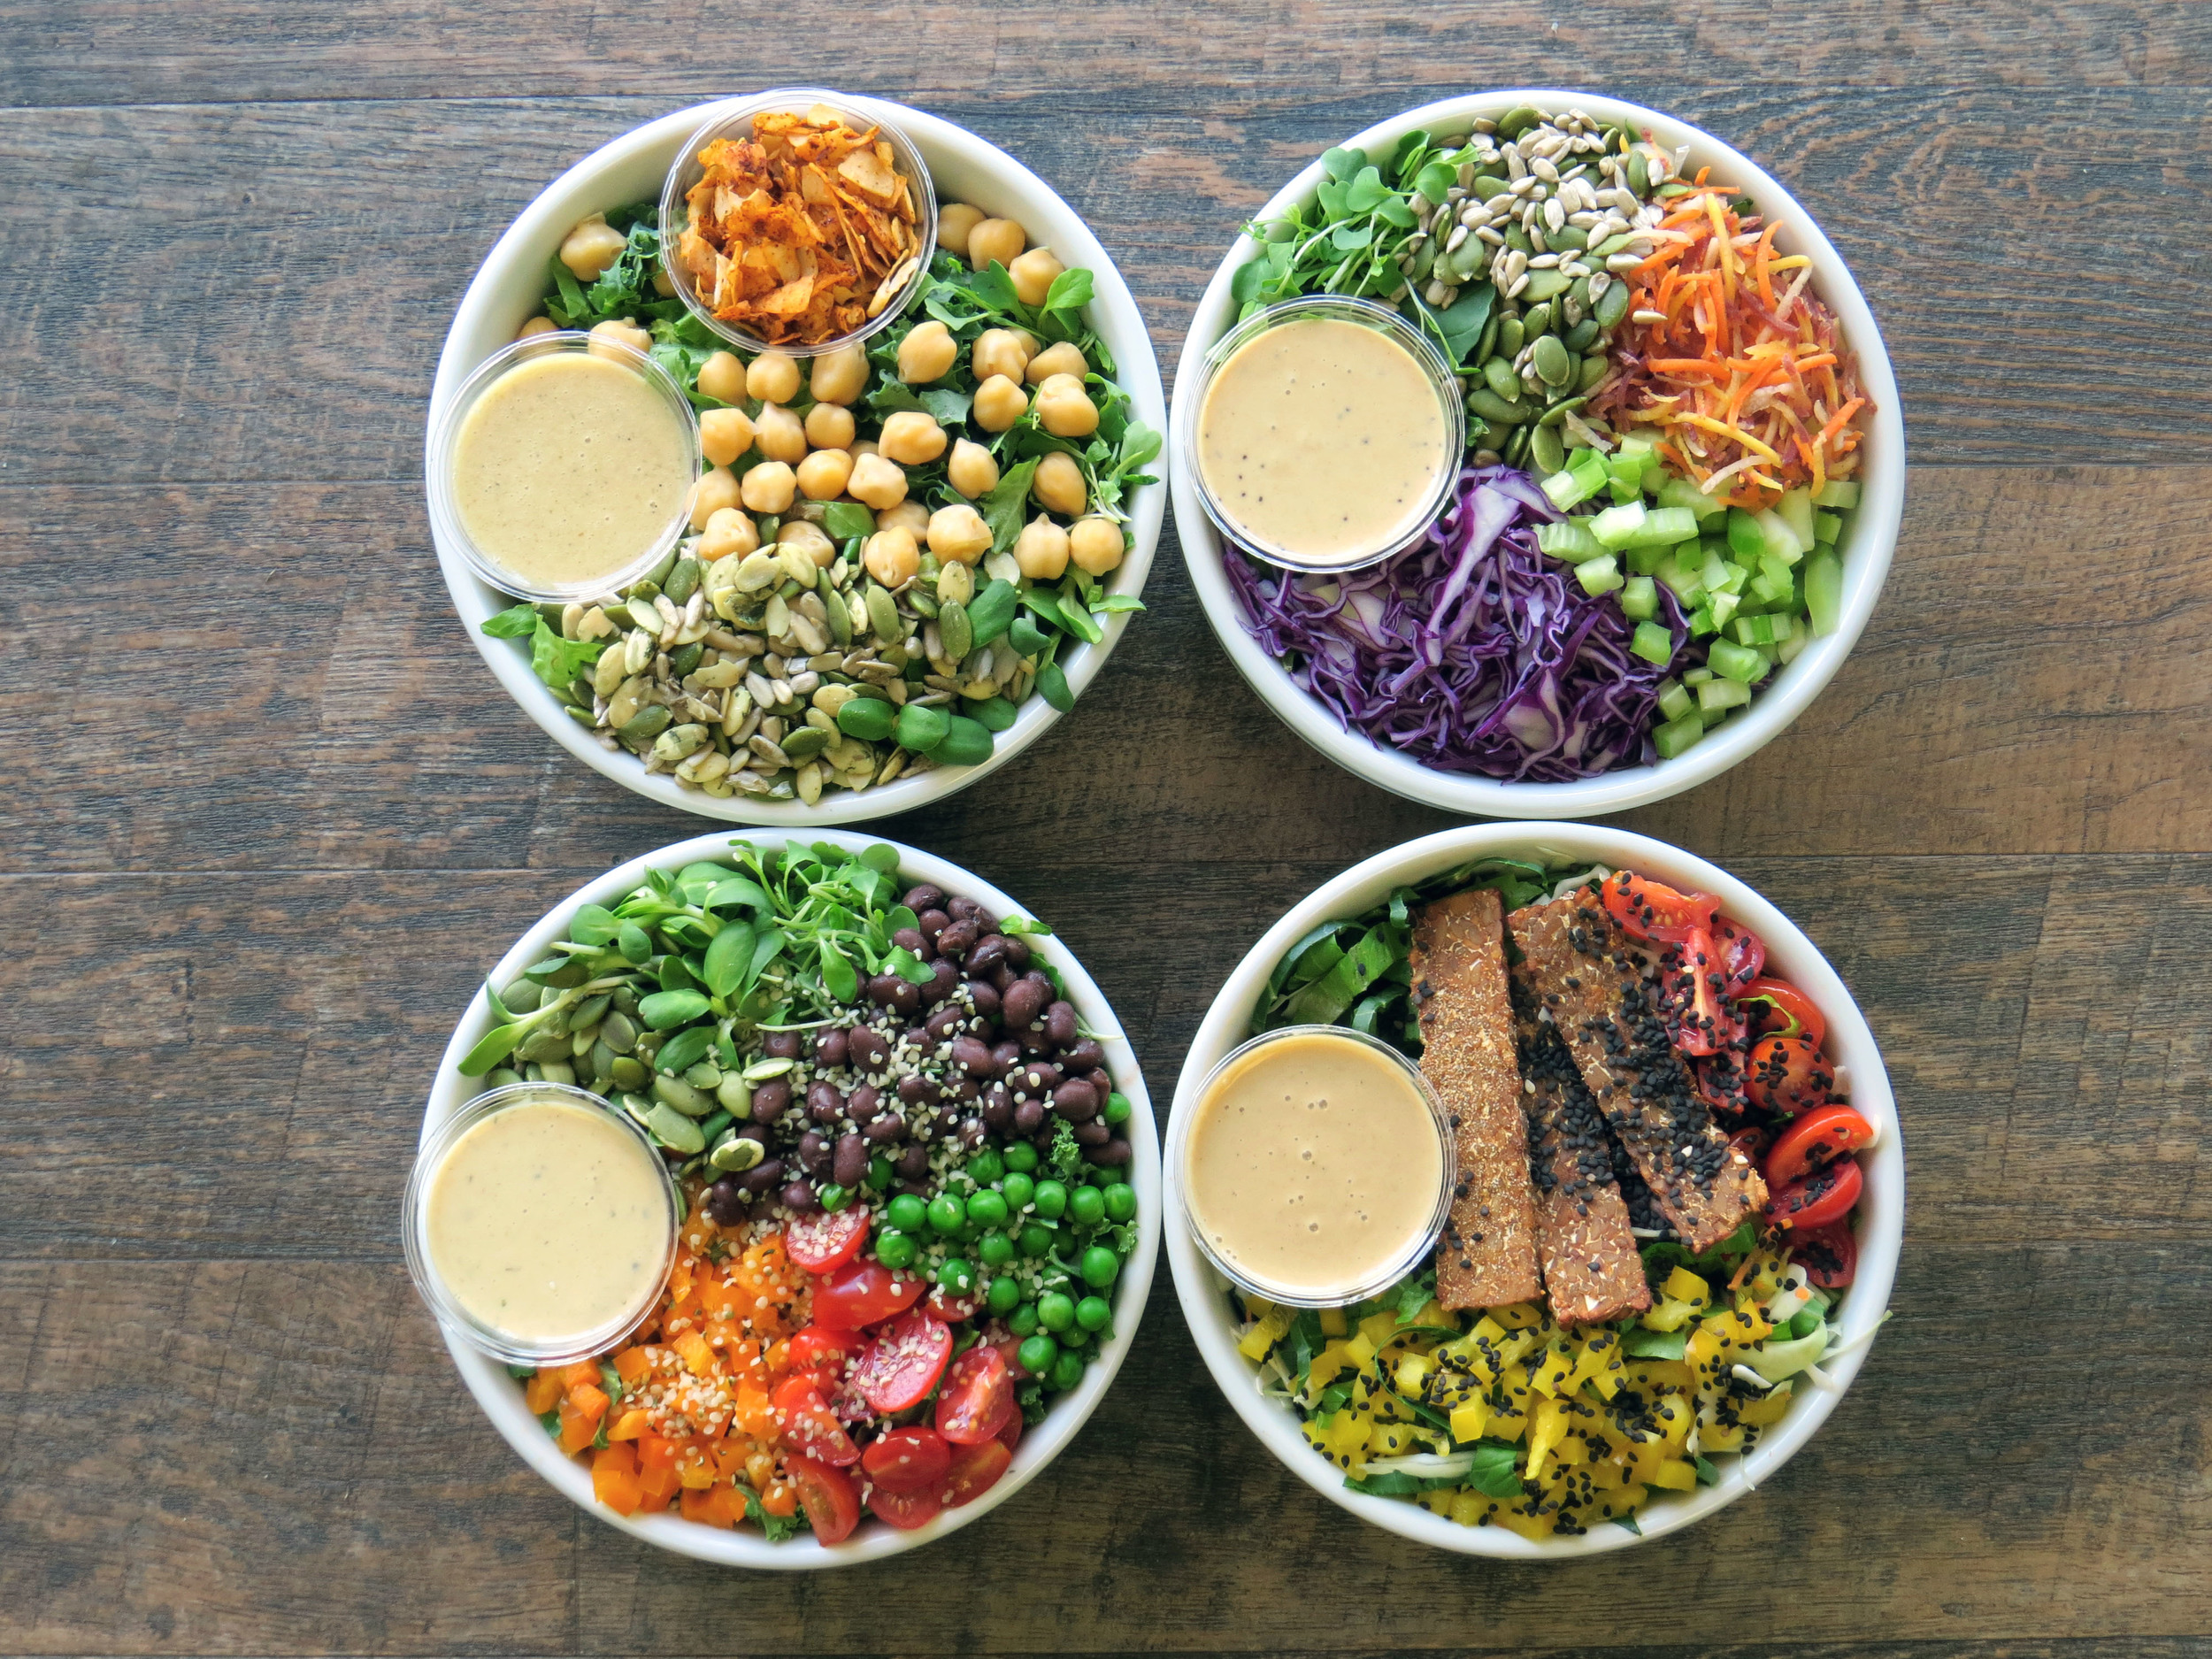 My friends at  RawFoodz will be serving delicious organic salads at the Vegan Food and Drink Festival - perfect for balancing out all that vegan junk food!  Photo courtesy of RawFoodz.